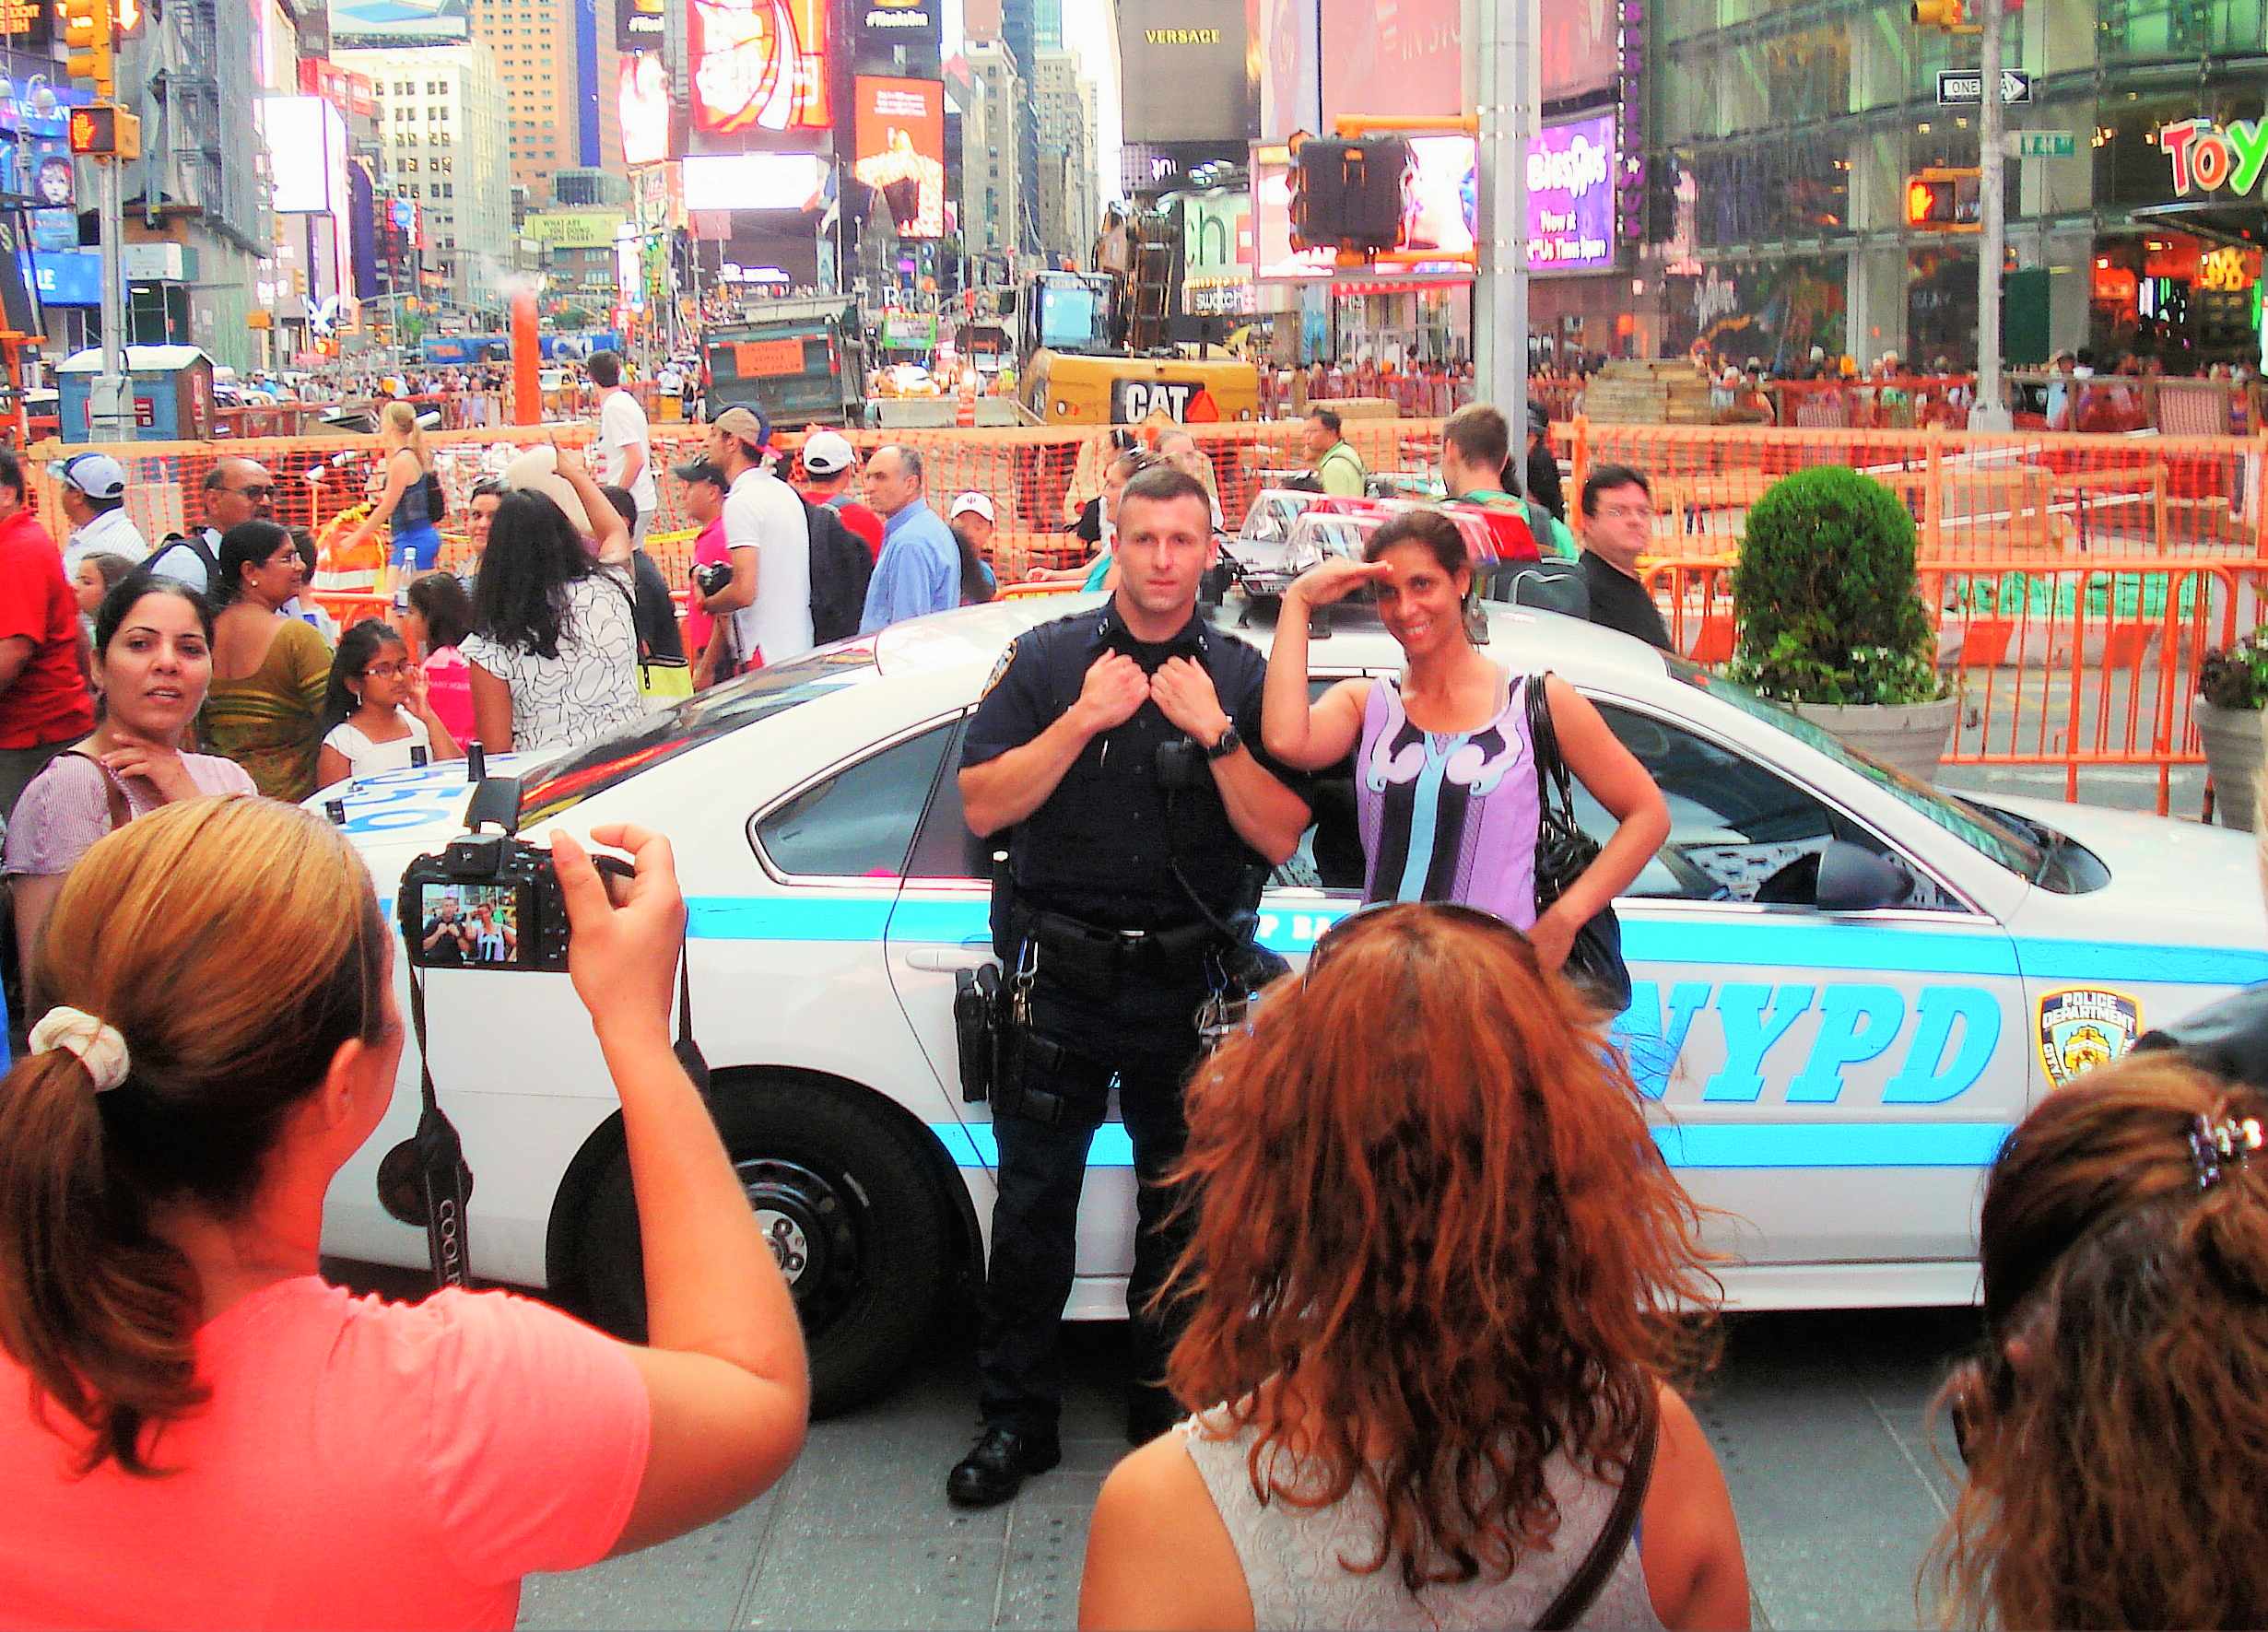 Tourists love to taking pictures with NYPD officers. Guess they love it, too